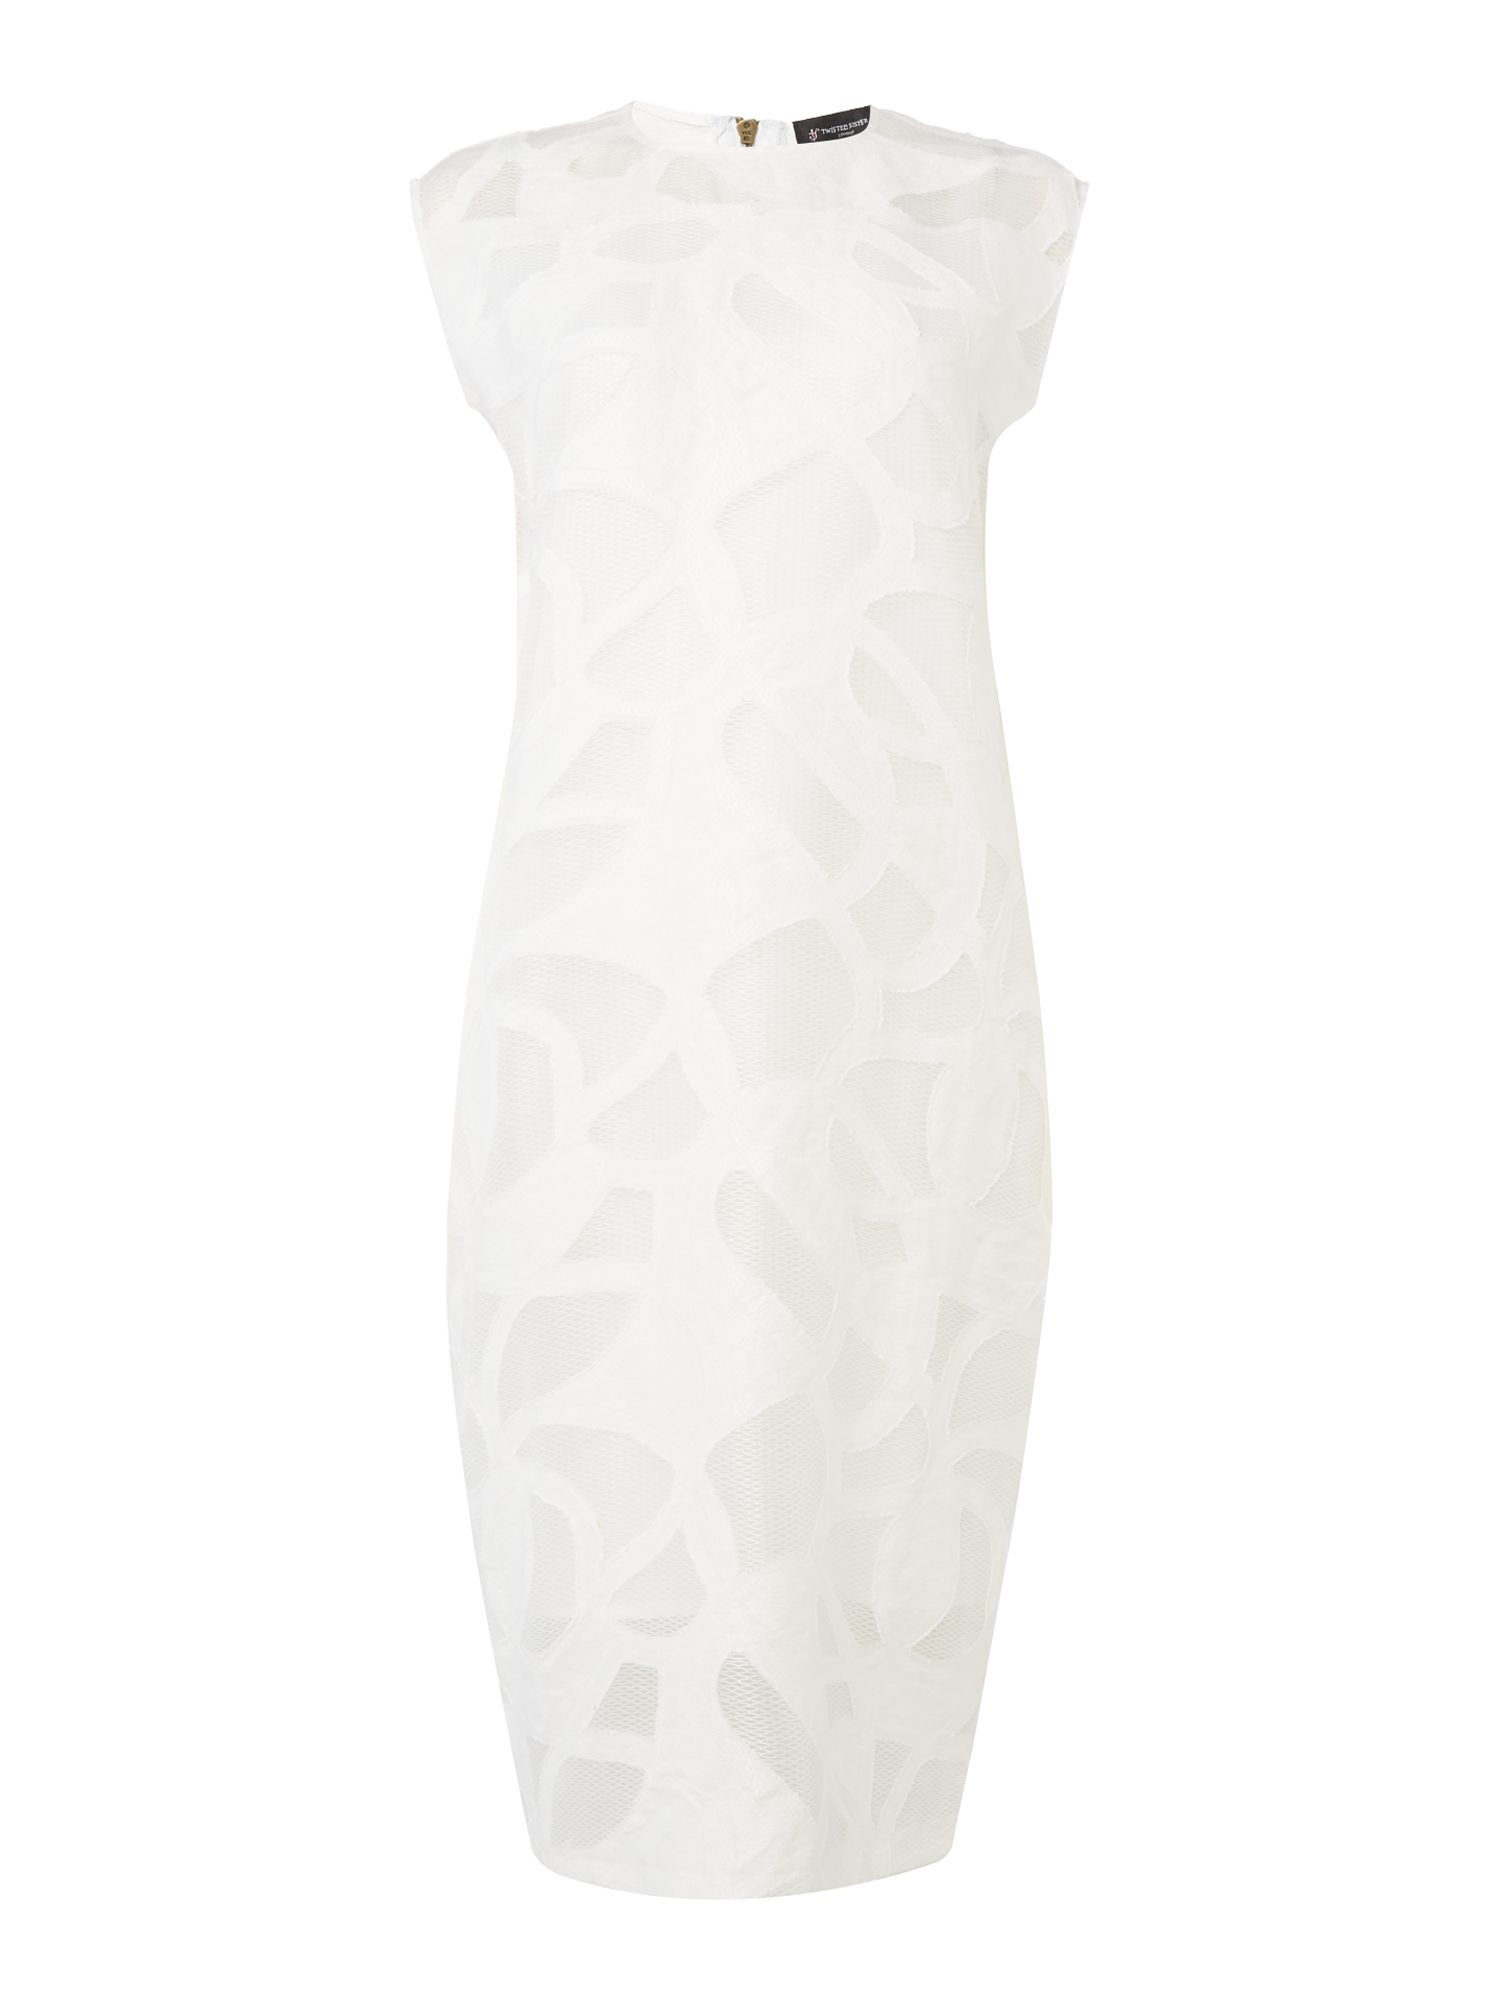 Label Lab Idalia Cutwork Dress, White